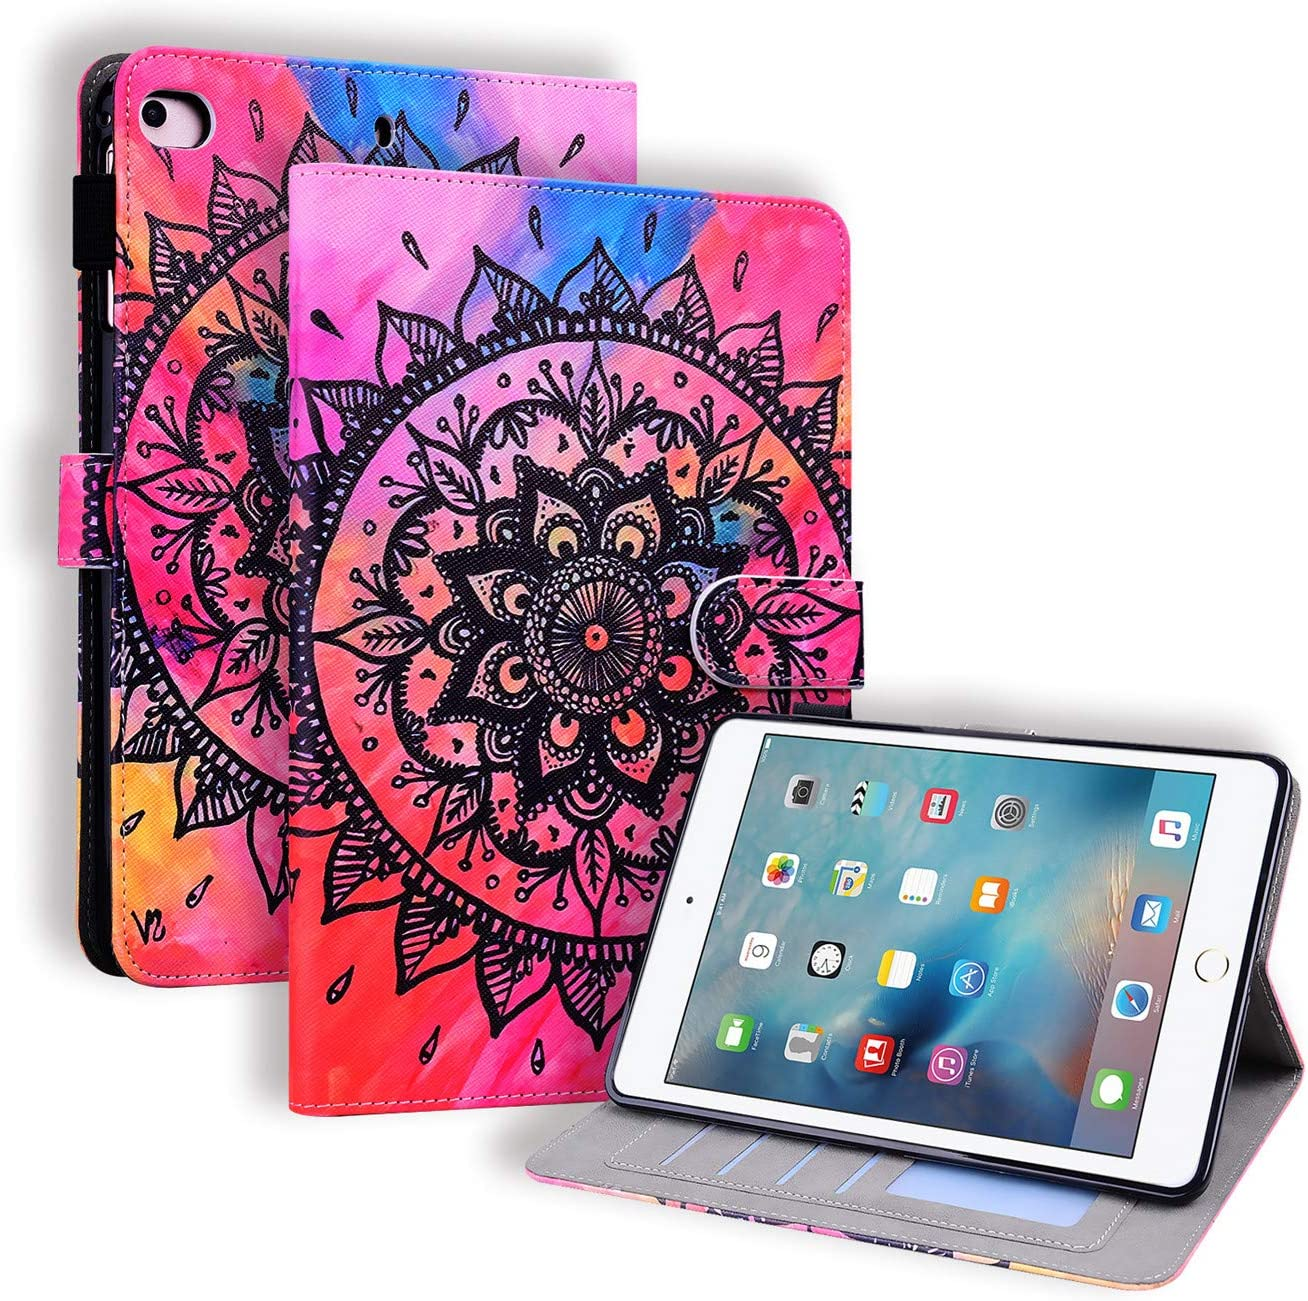 APLLEN Suitable for iPad Mini Year-end gift Seasonal Wrap Introduction 5 Case 4 S Tablet Wallet Flip